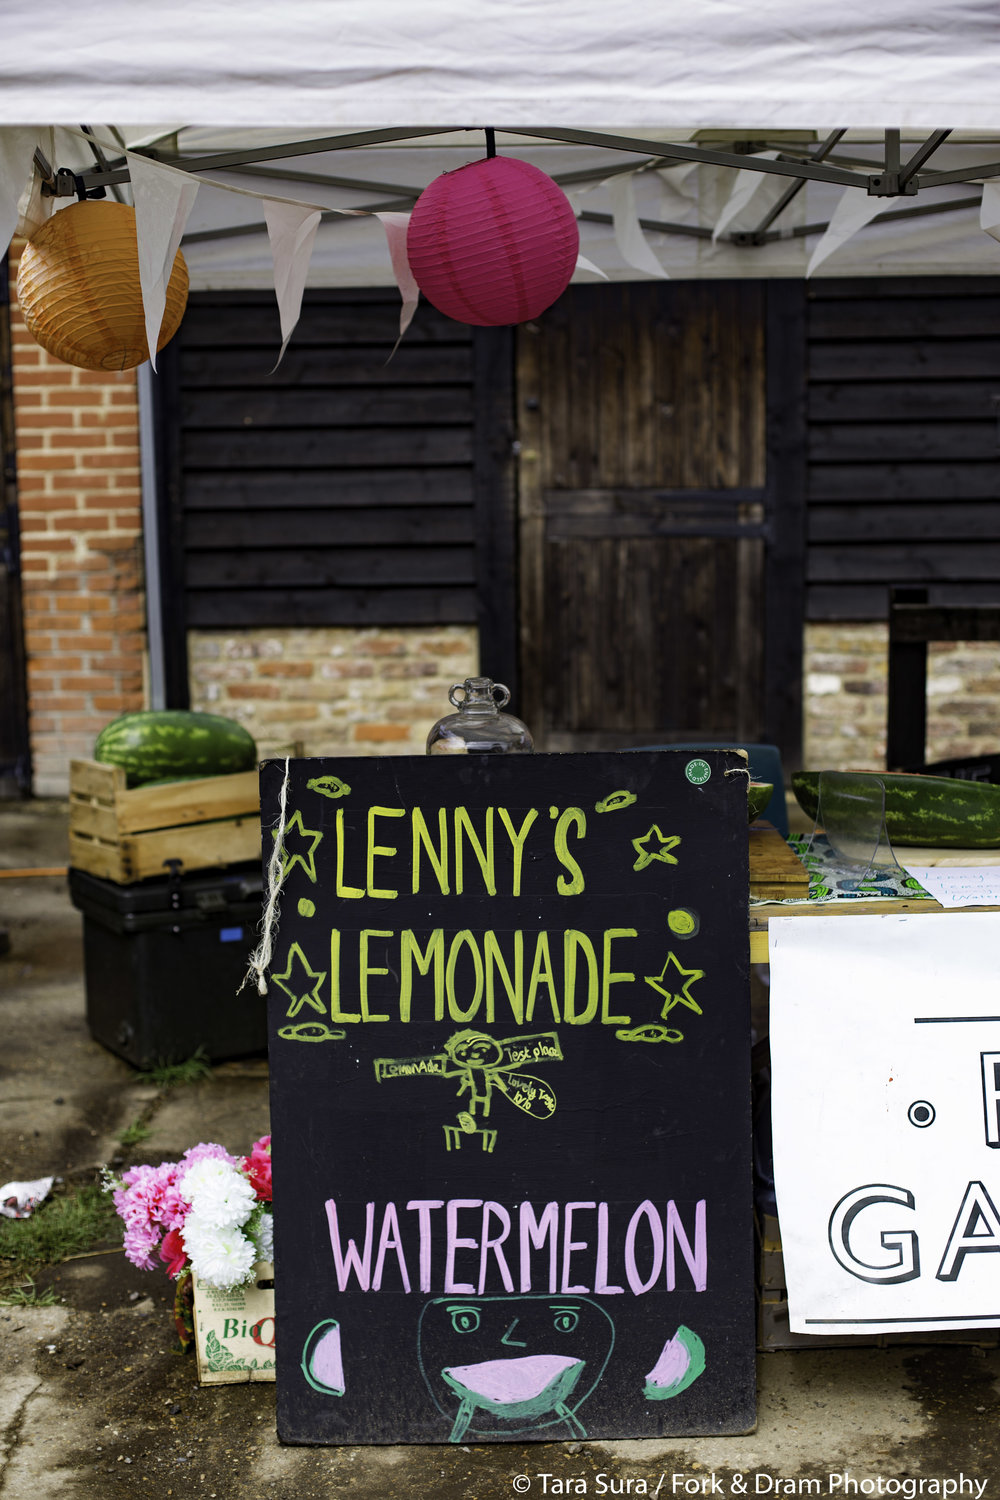 THE FOOD GATHERER   Find out about upcoming Food Gatherer's food events and enjoy some welcome refreshment with Lenny's Lemonade  and watermelon smiles.     http://www.thefoodgatherer.com/       Photo: Tara Sura/ fork and Dram